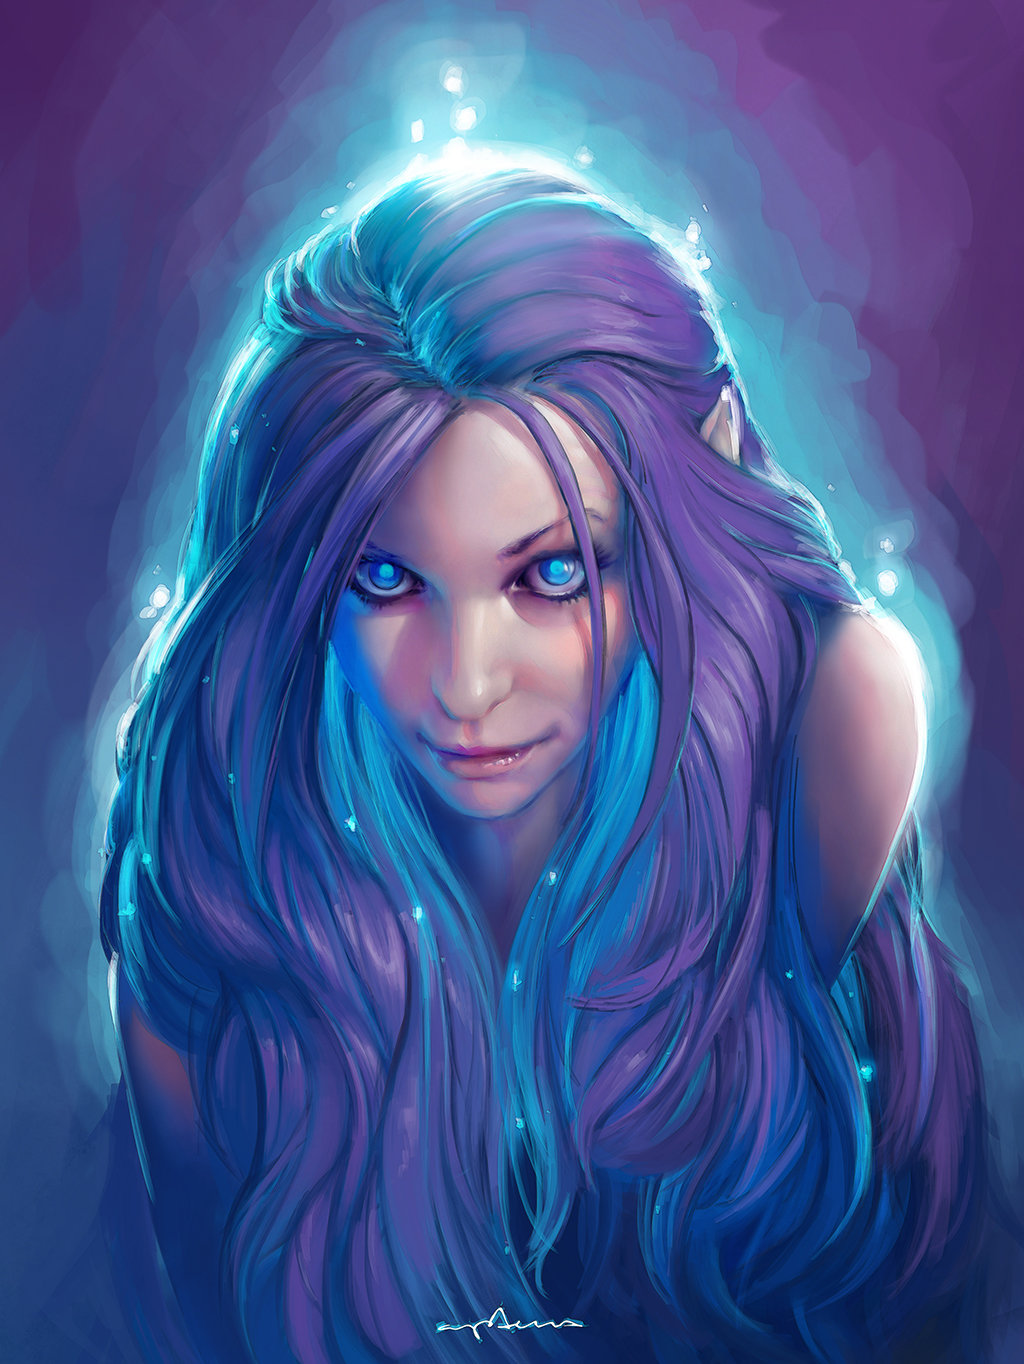 women fantasy eyes blue-#26